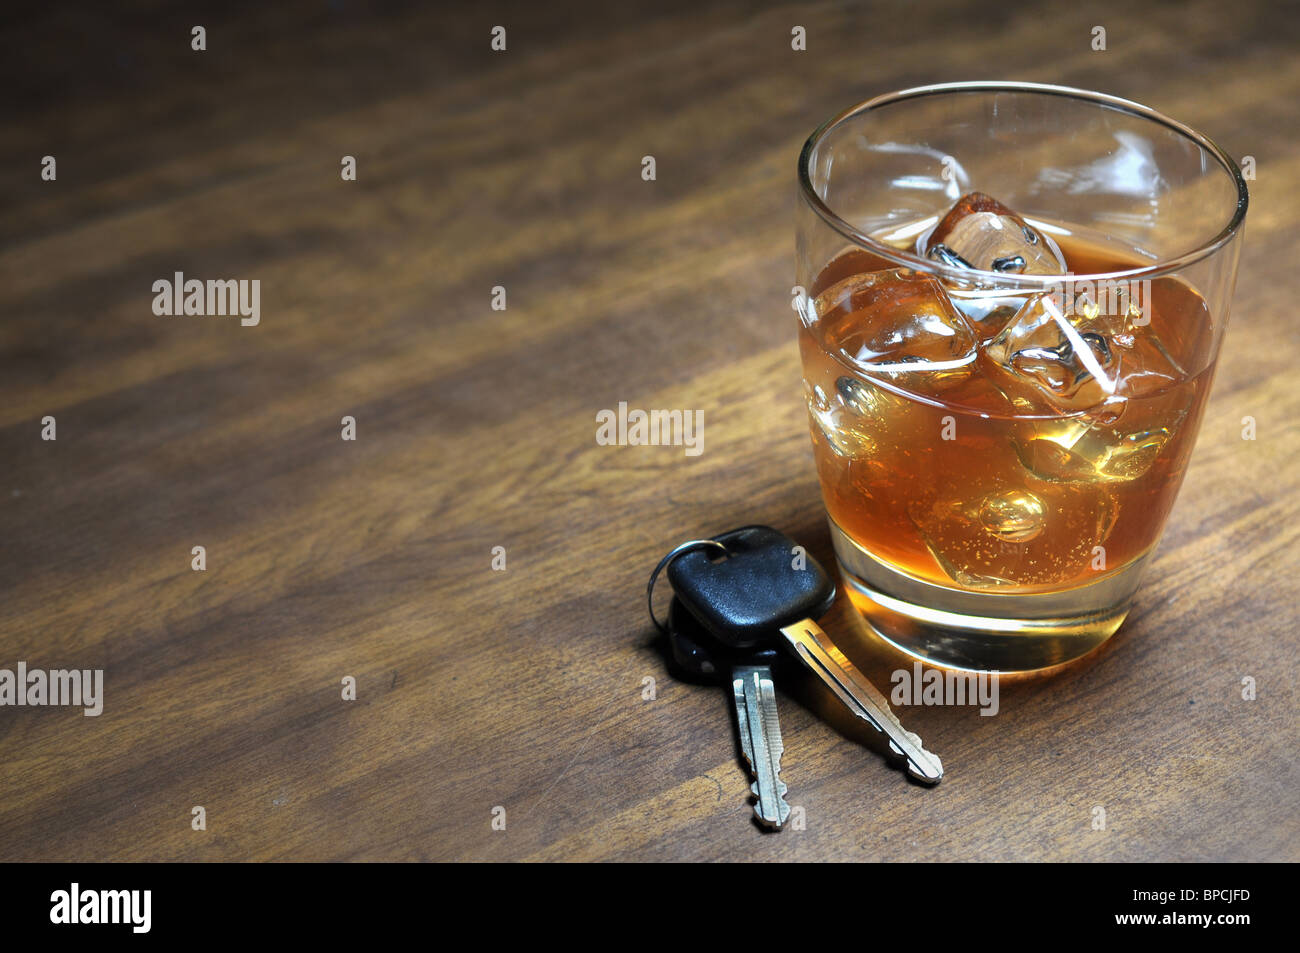 Glass of whiskey and car keys on wooden table. Stock Photo